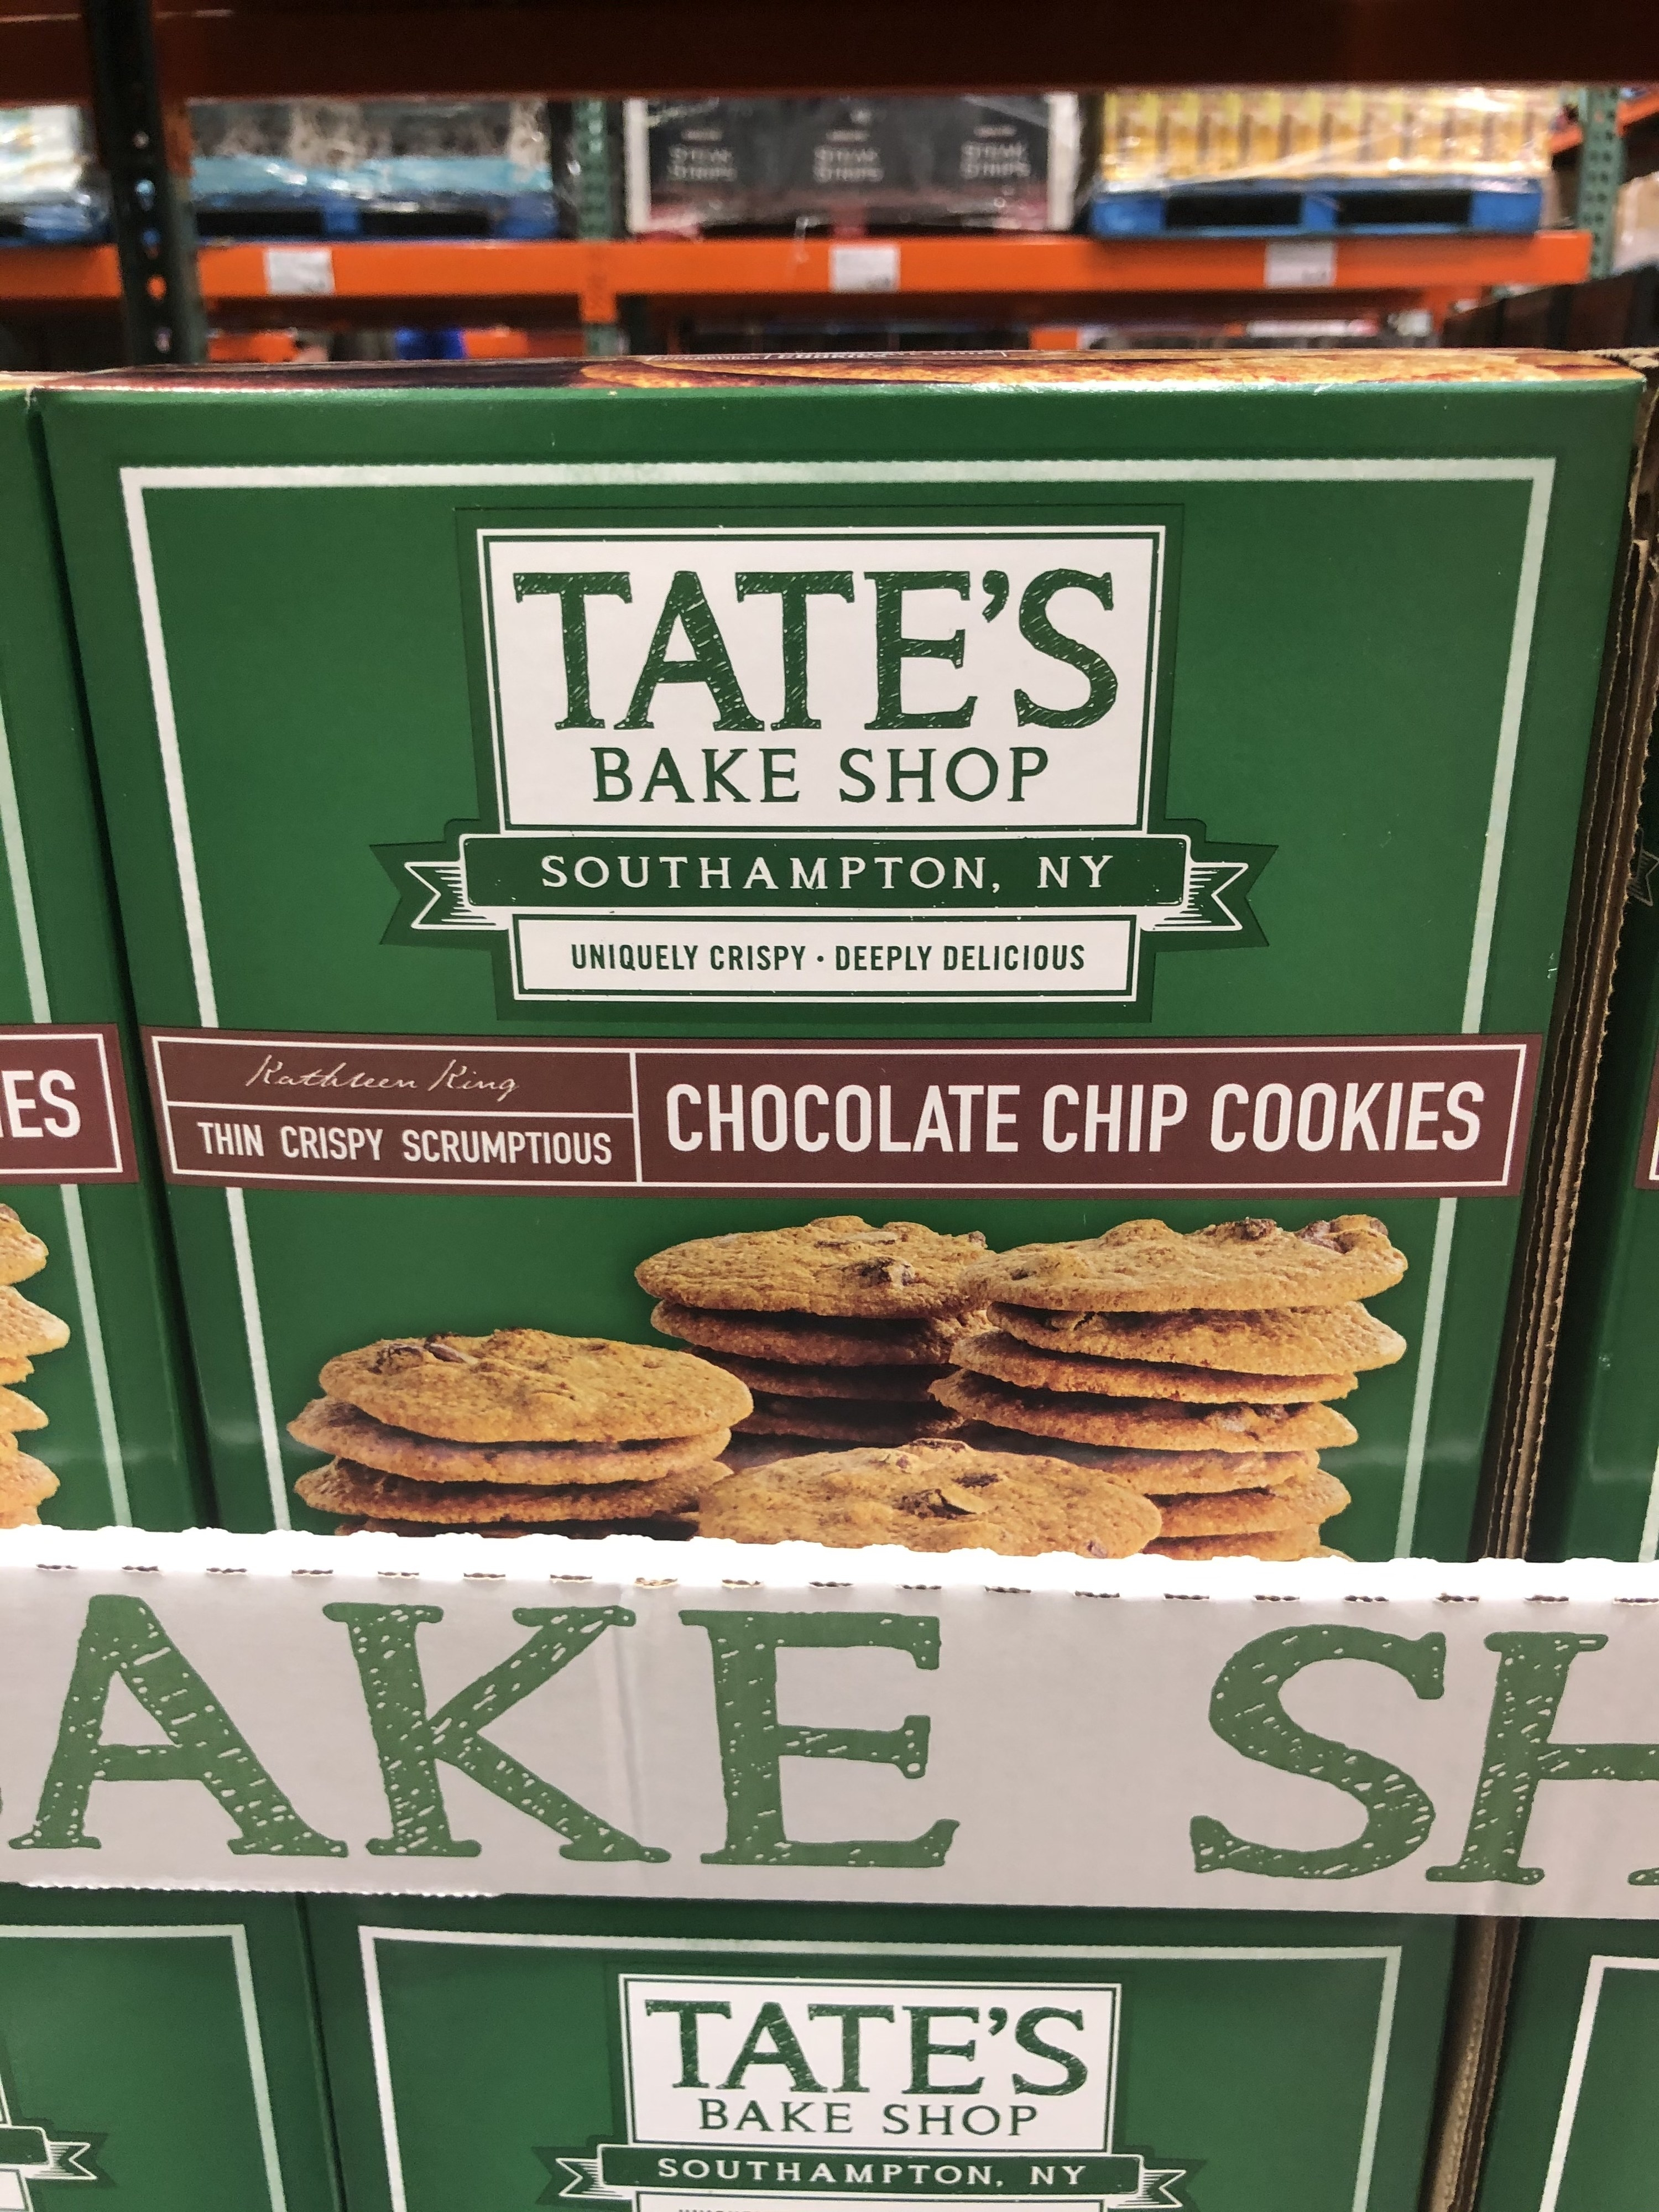 A box of Tate's chocolate chip cookies